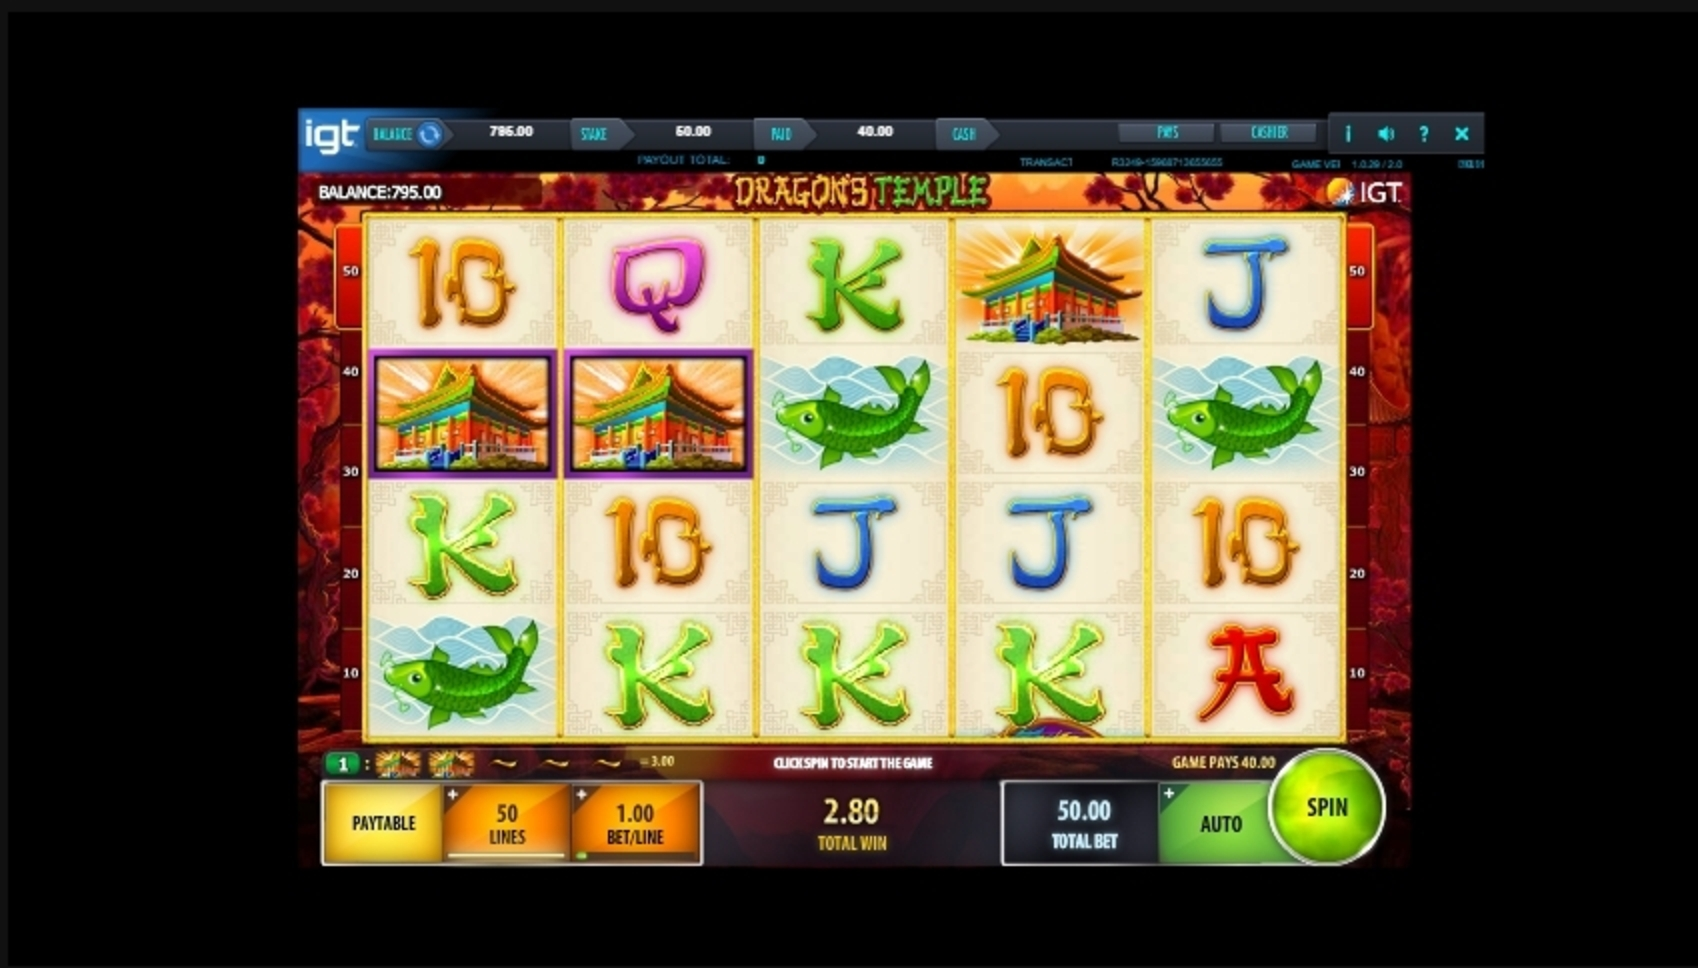 Win Money in Dragon's Temple Free Slot Game by IGT